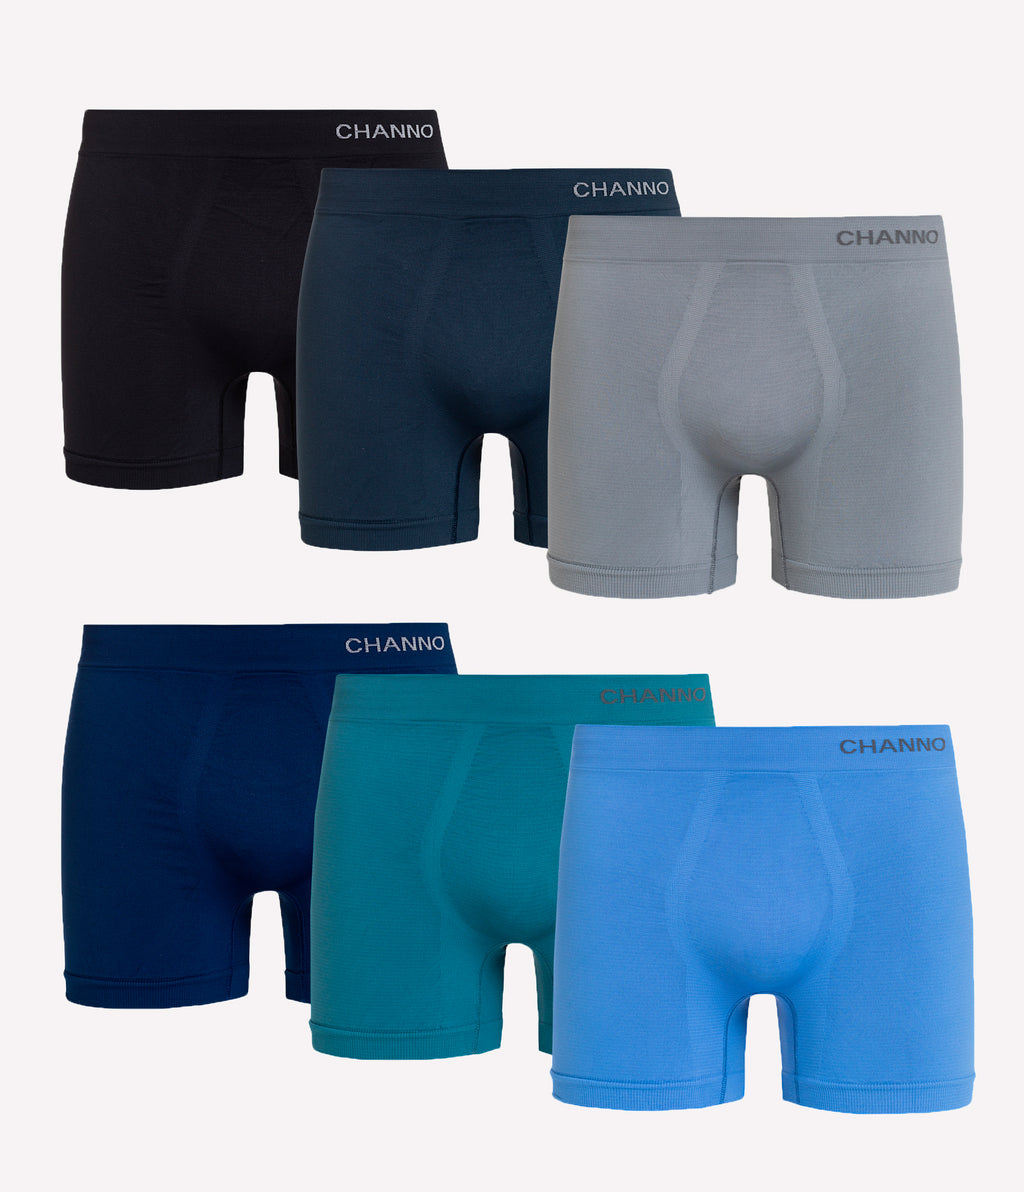 Calzoncillos Deportivos de Lycra Maximum Performance Channo Active Series Lisos (pack de 6)